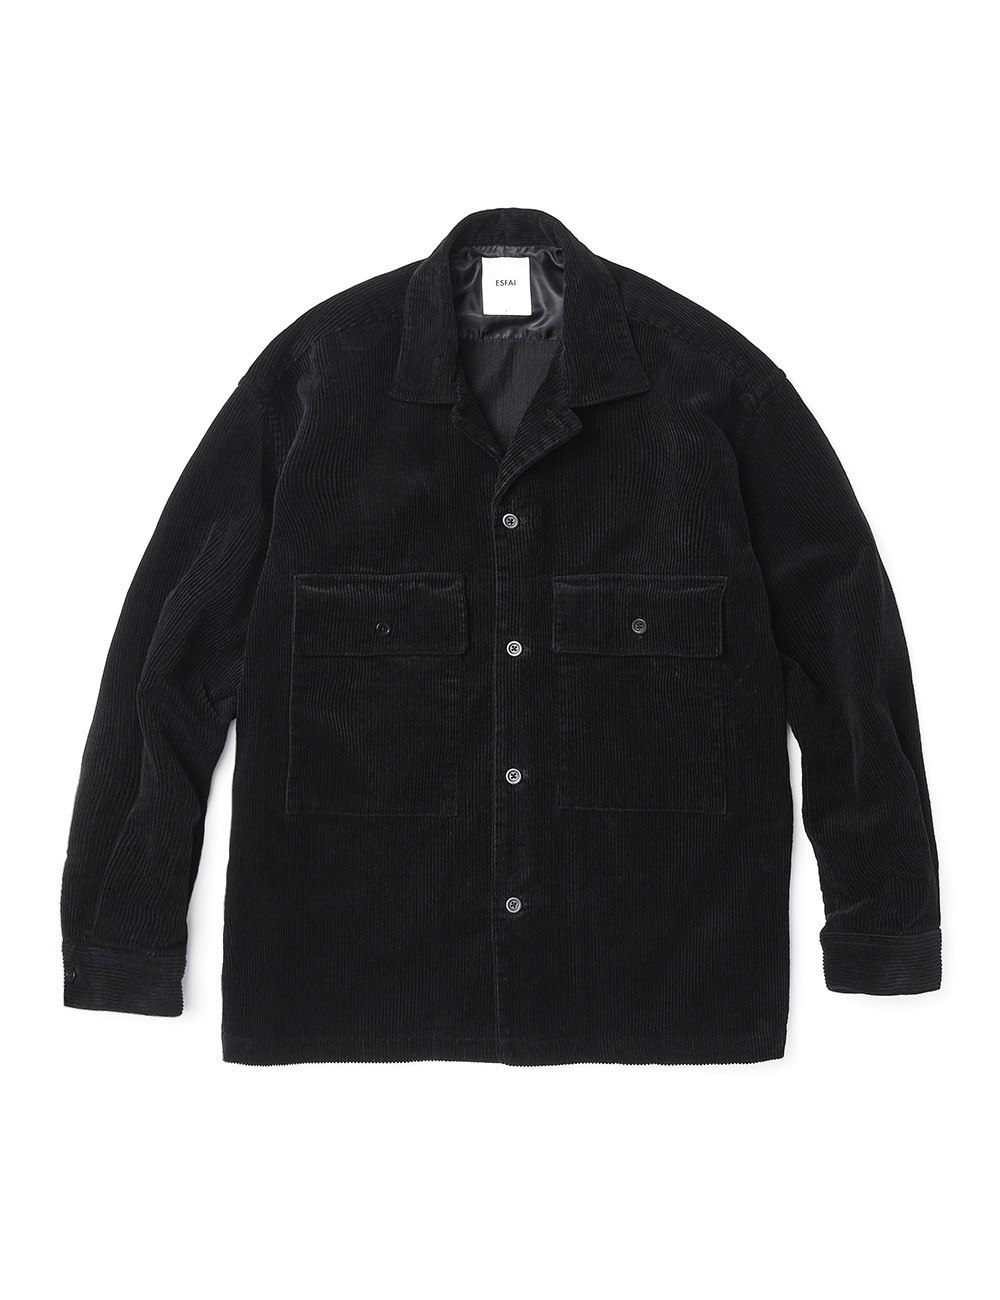 [ESFAI] SO25 CORDUROY SET UP JACKET (BLACK)